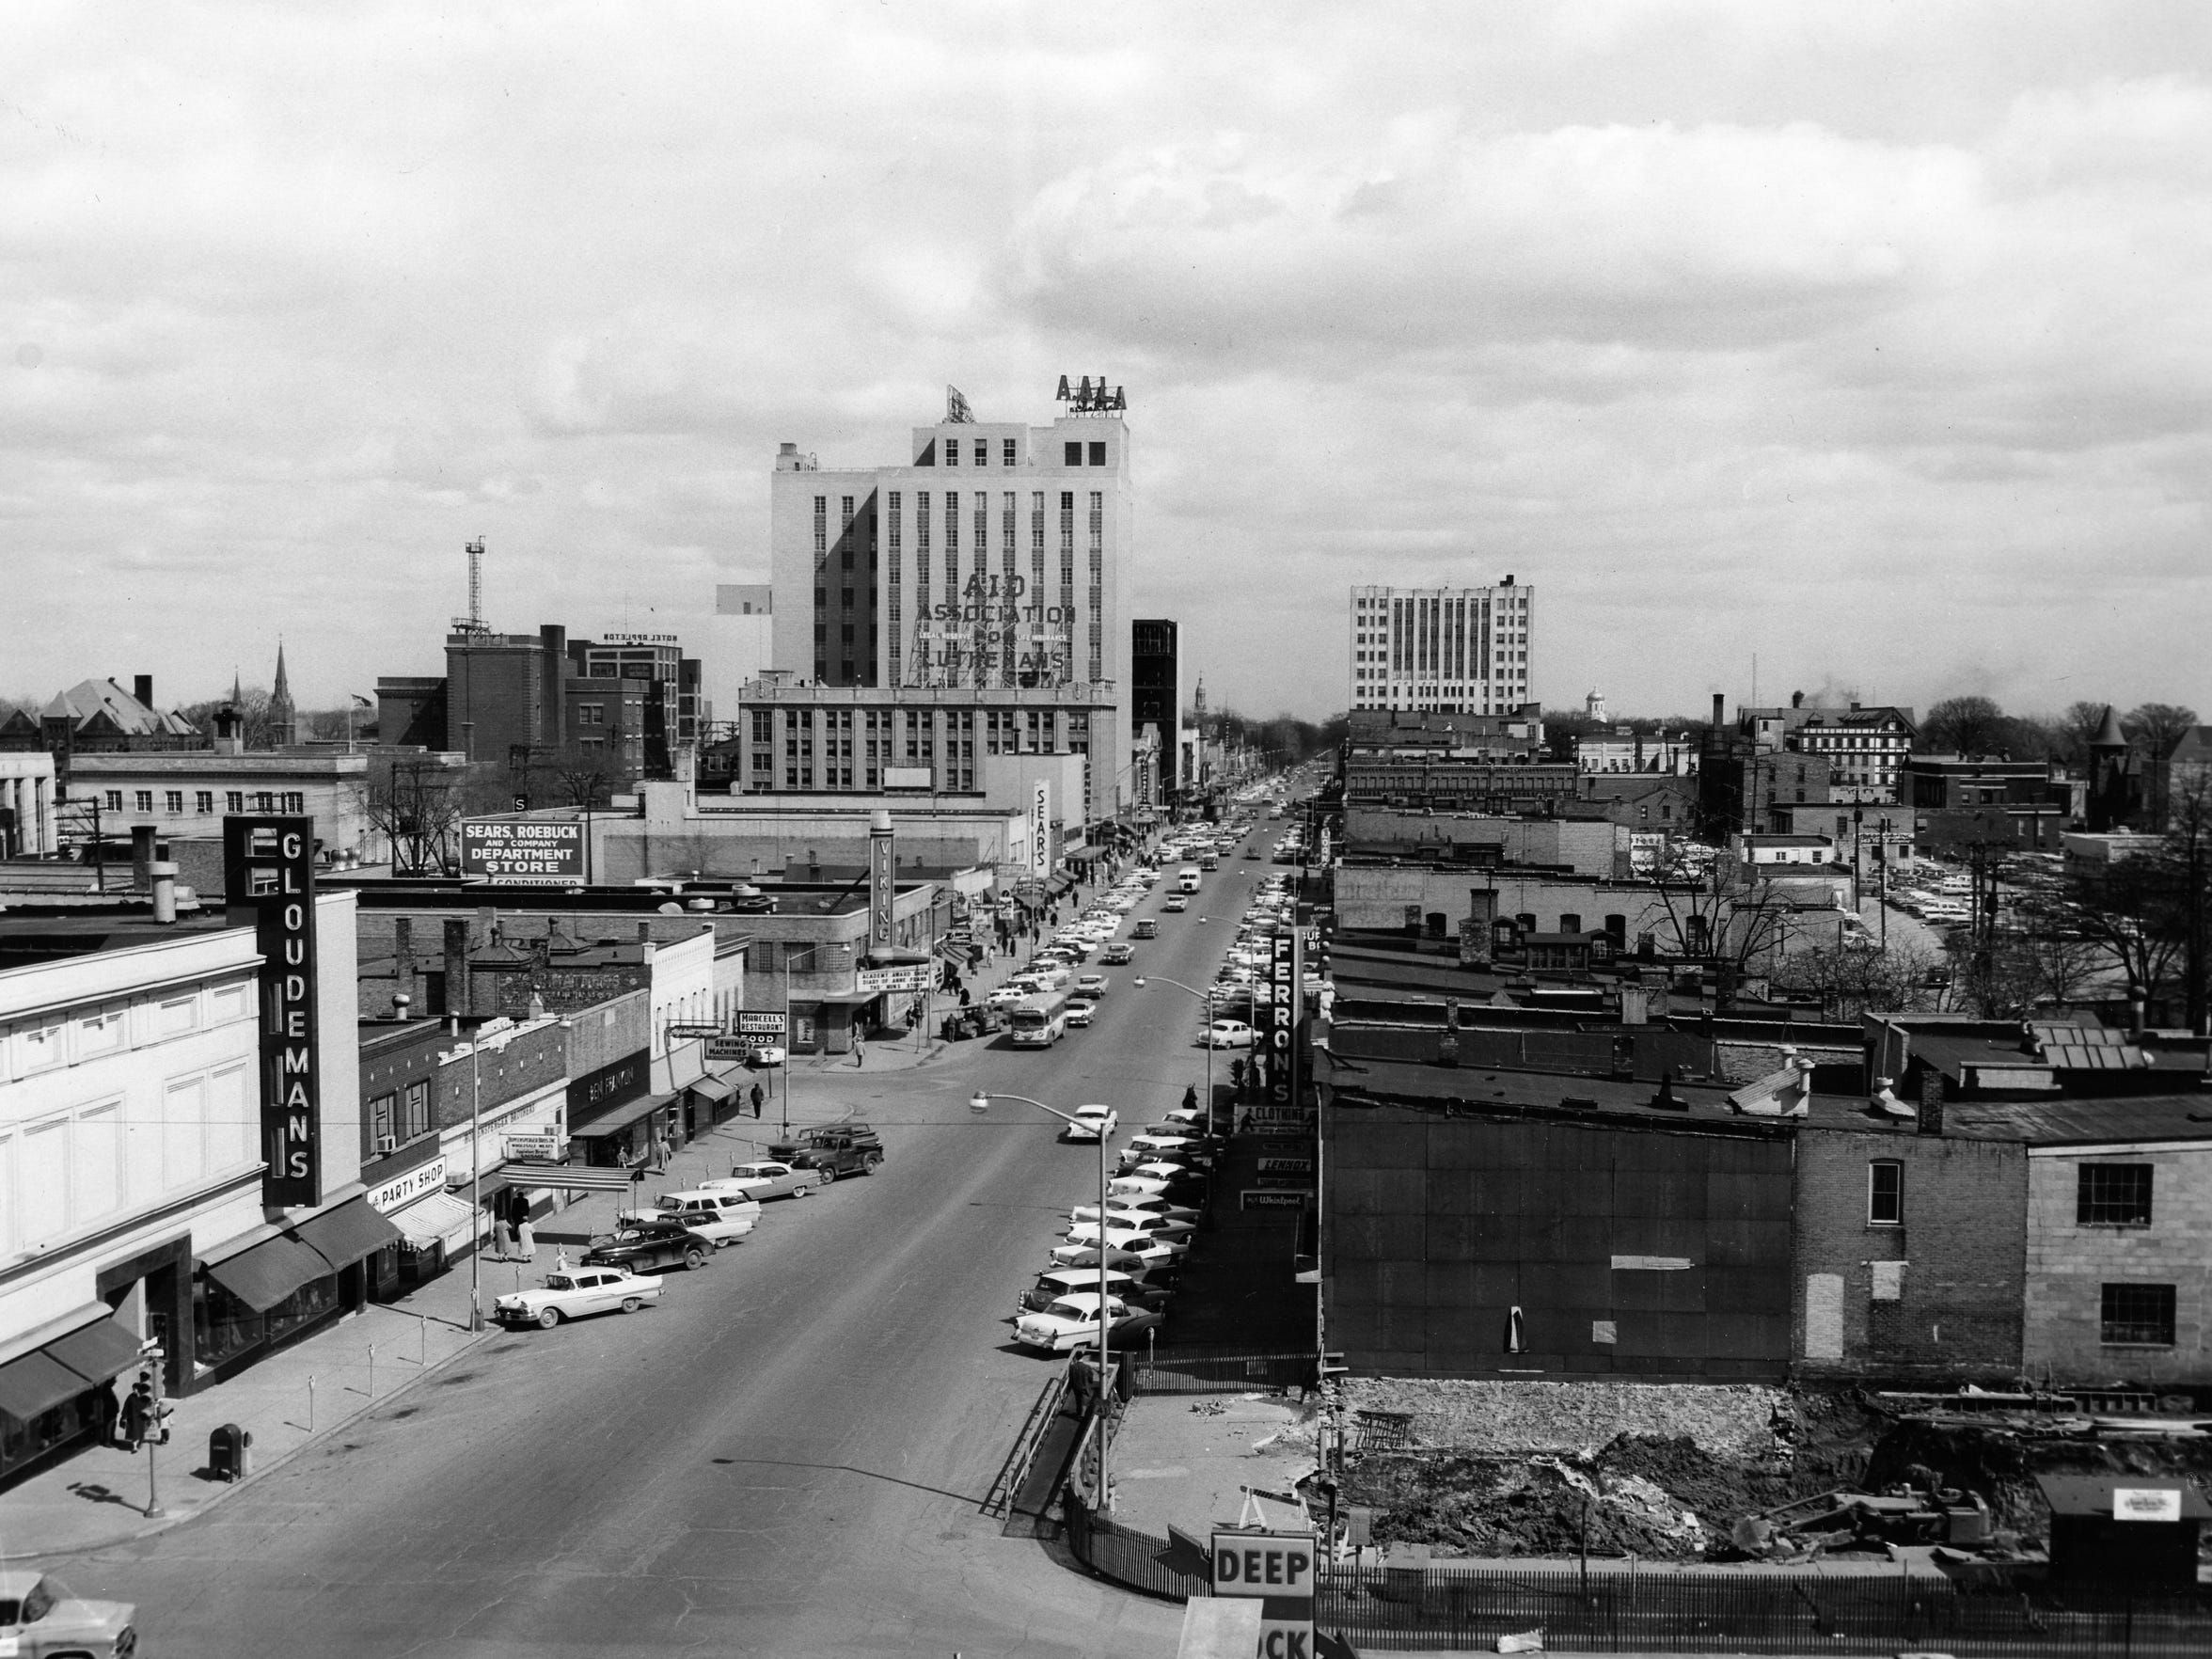 A look at downtown Appleton in the 1960s.